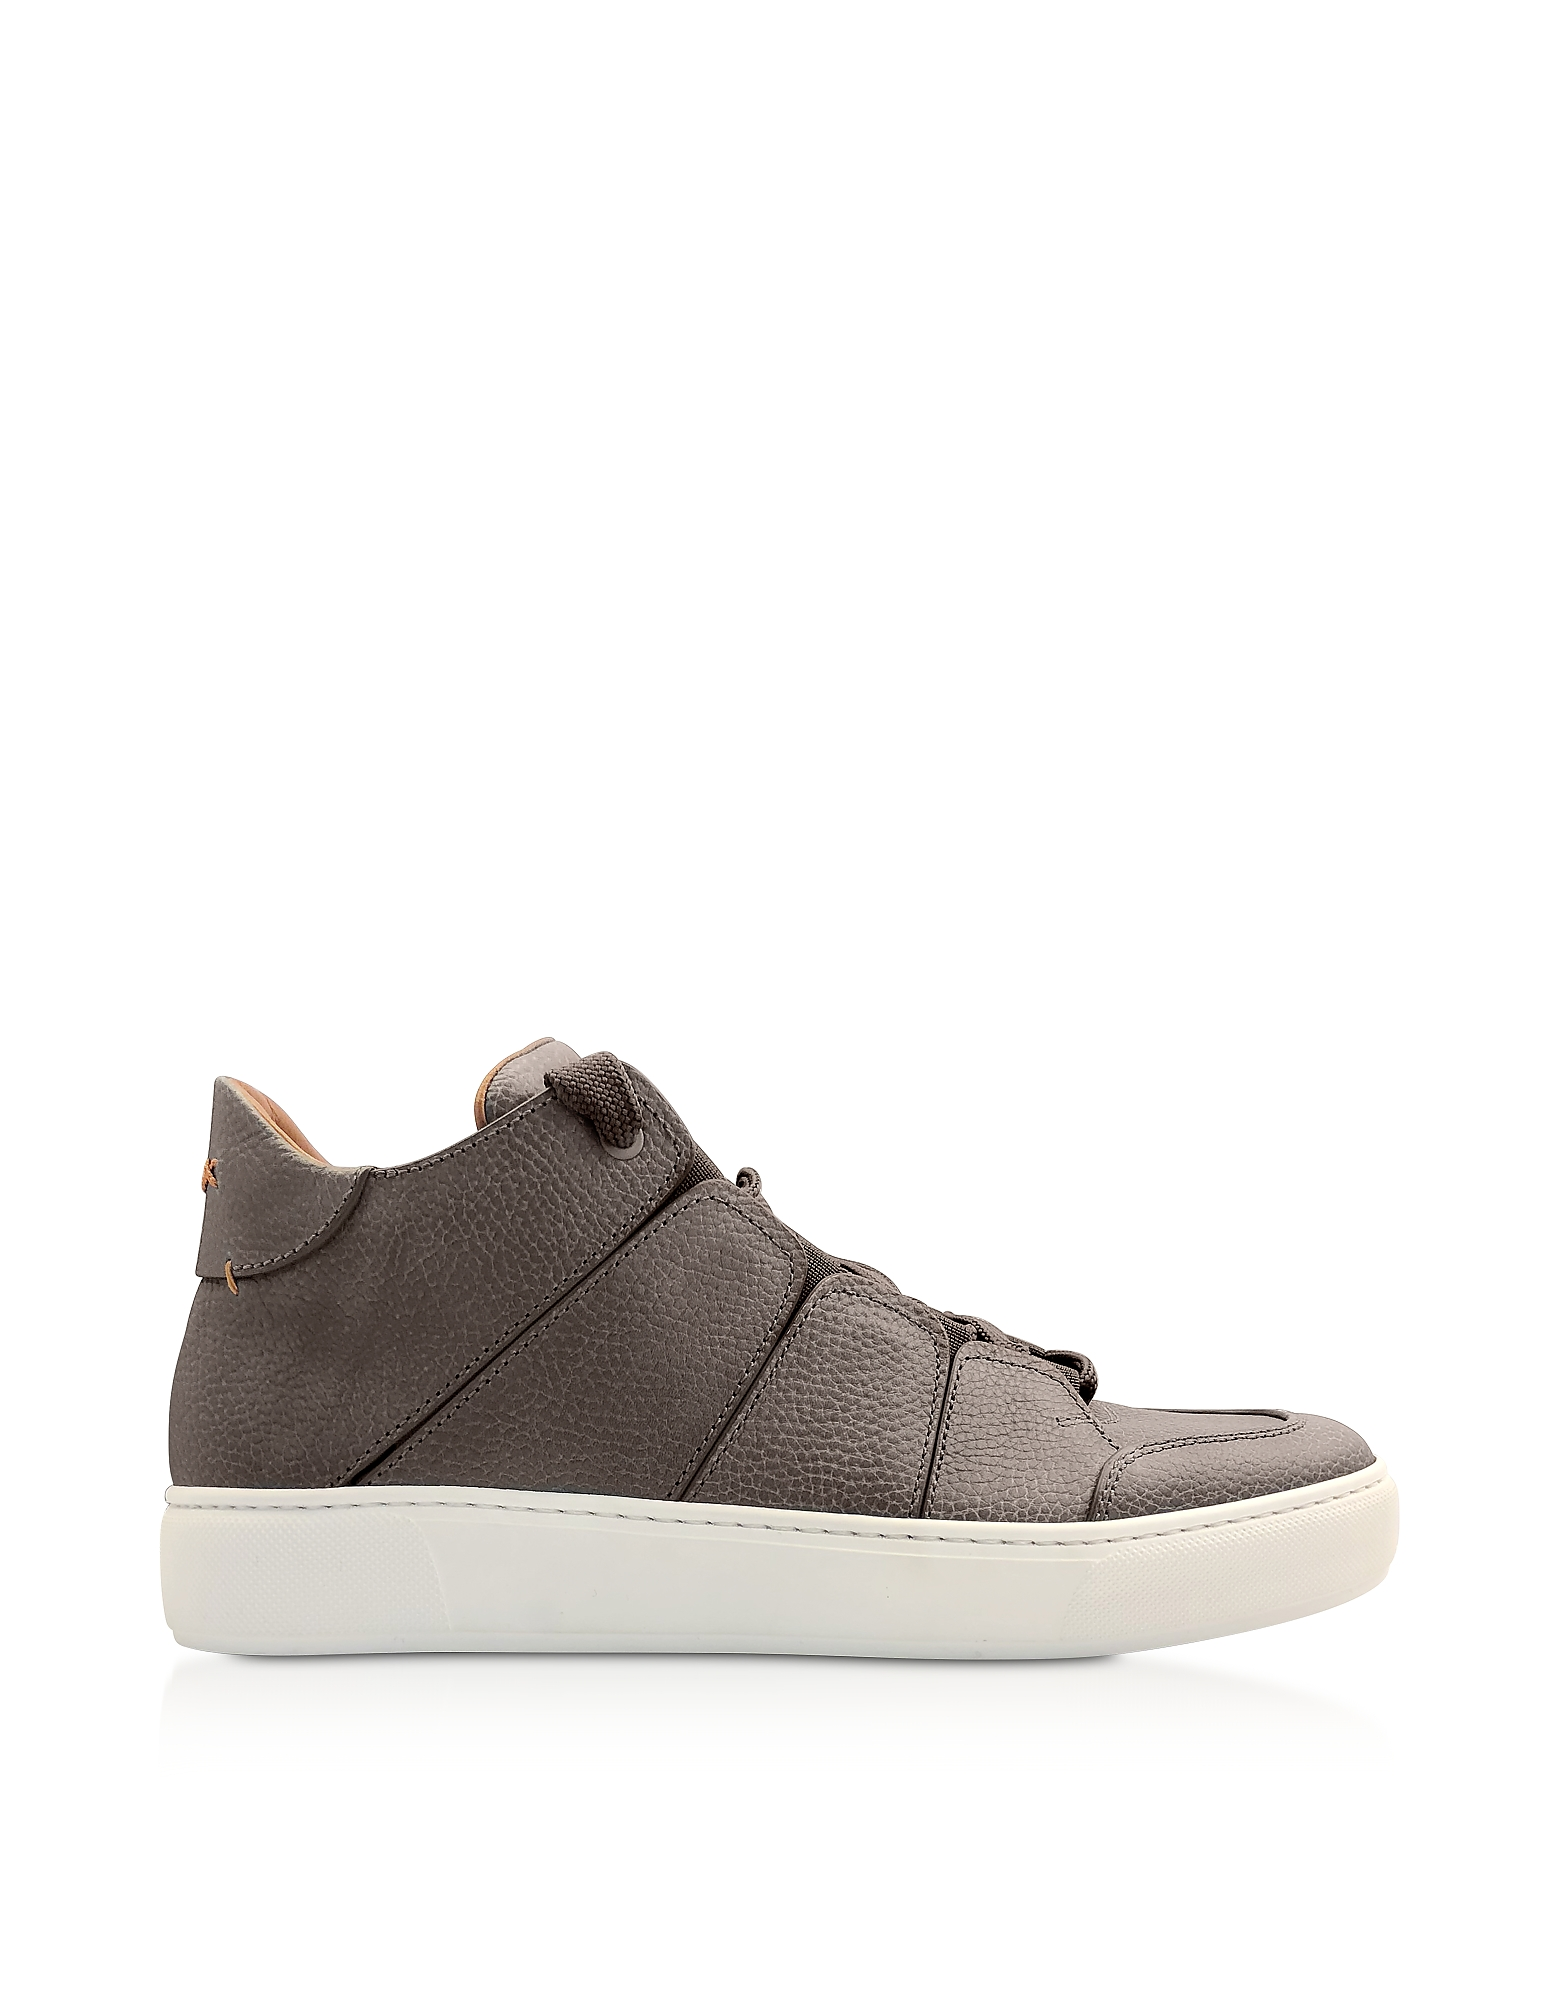 Leather Tiziano High-Top Sneakers